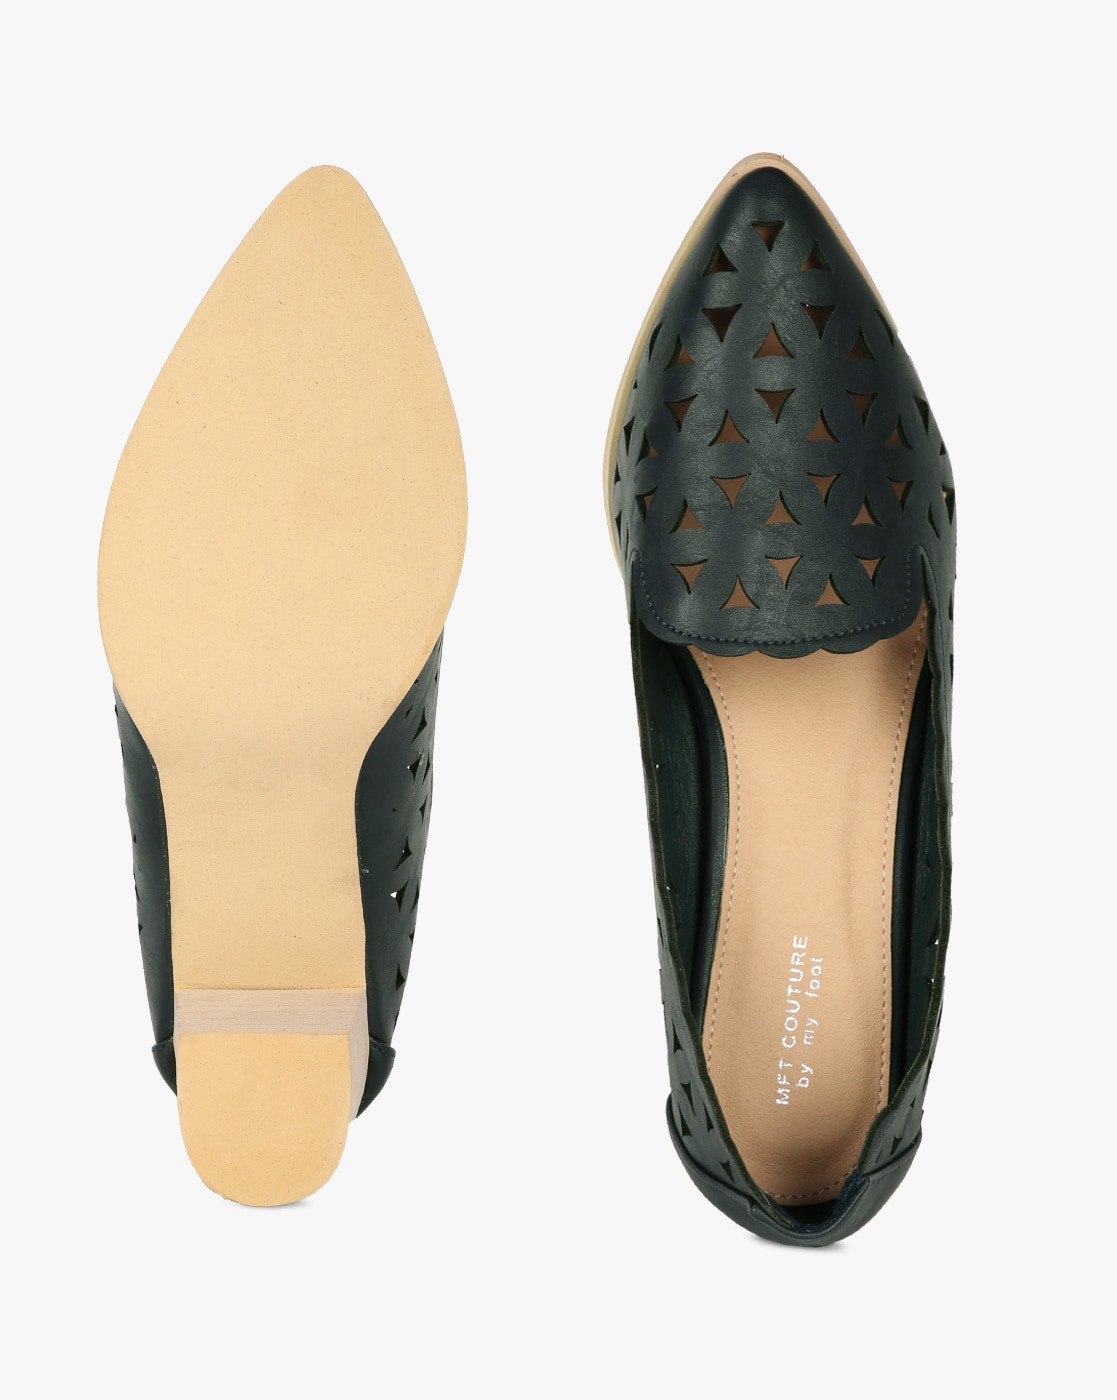 aeb18e2a544 Buy Dark Green Heeled Shoes for Women by MFT Couture Online